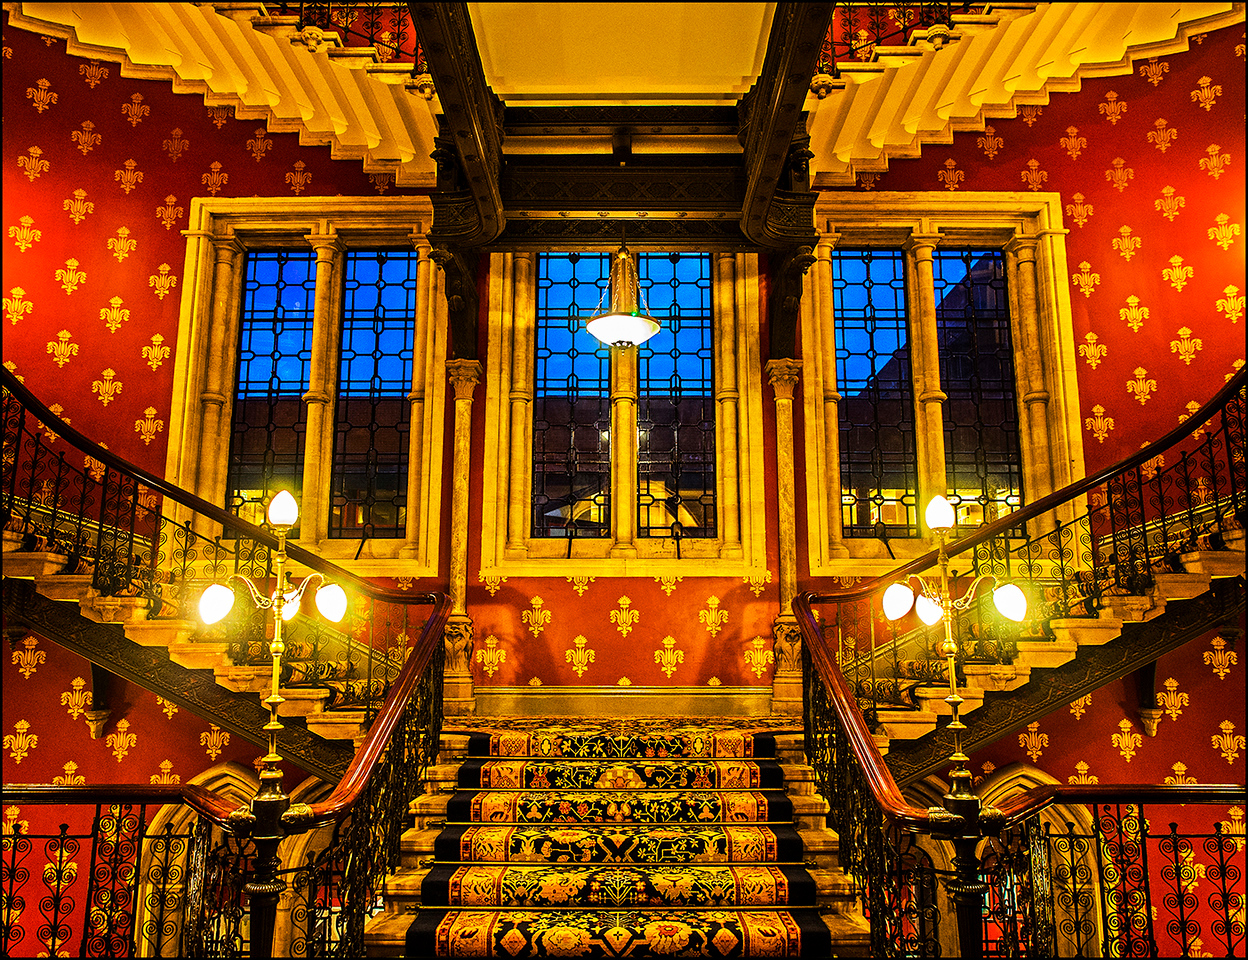 A Regal Staircase